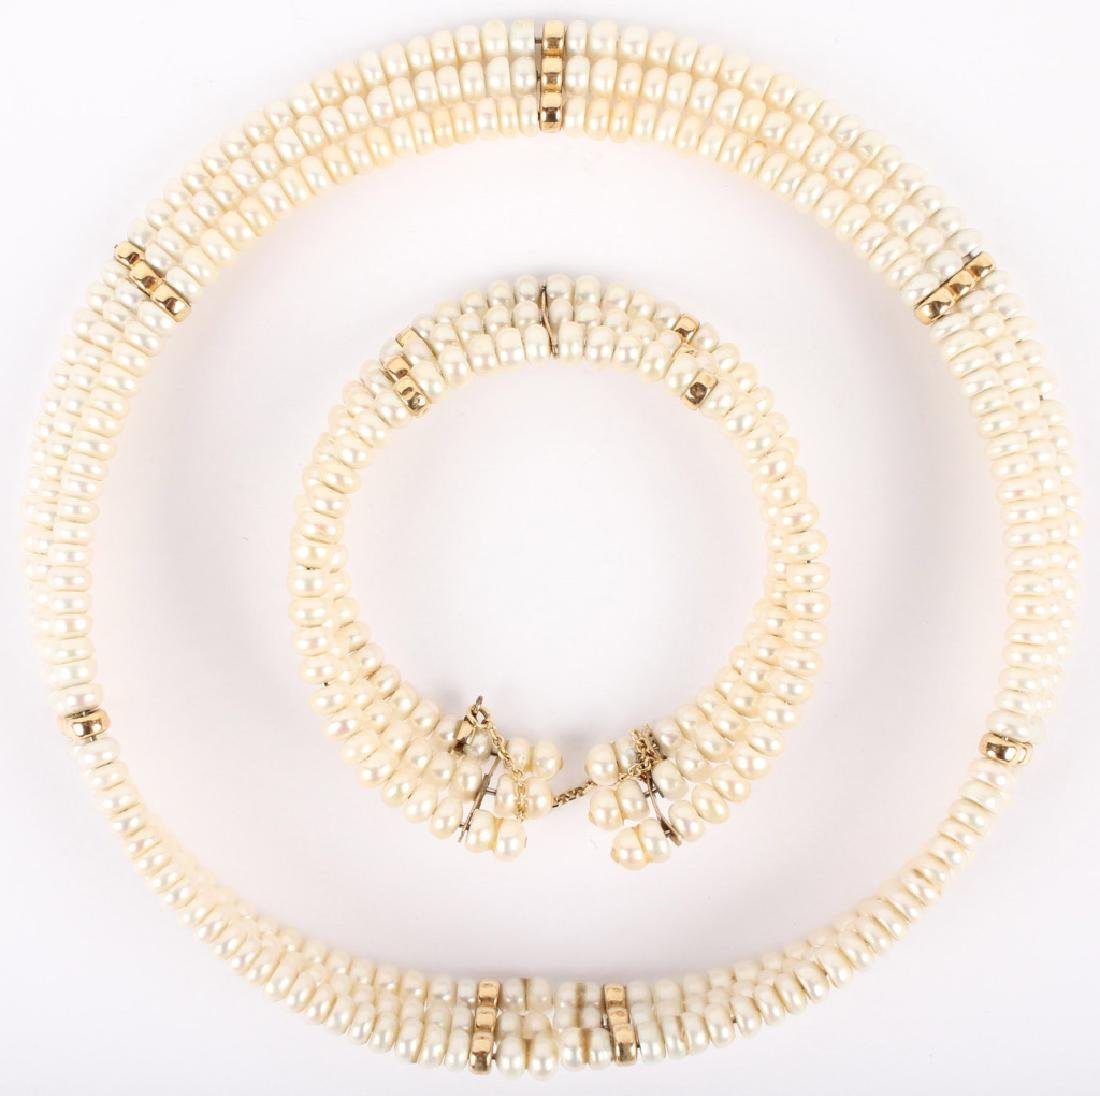 14K YELLOW GOLD PEARL CHOKER NECKLACE & BRACELET